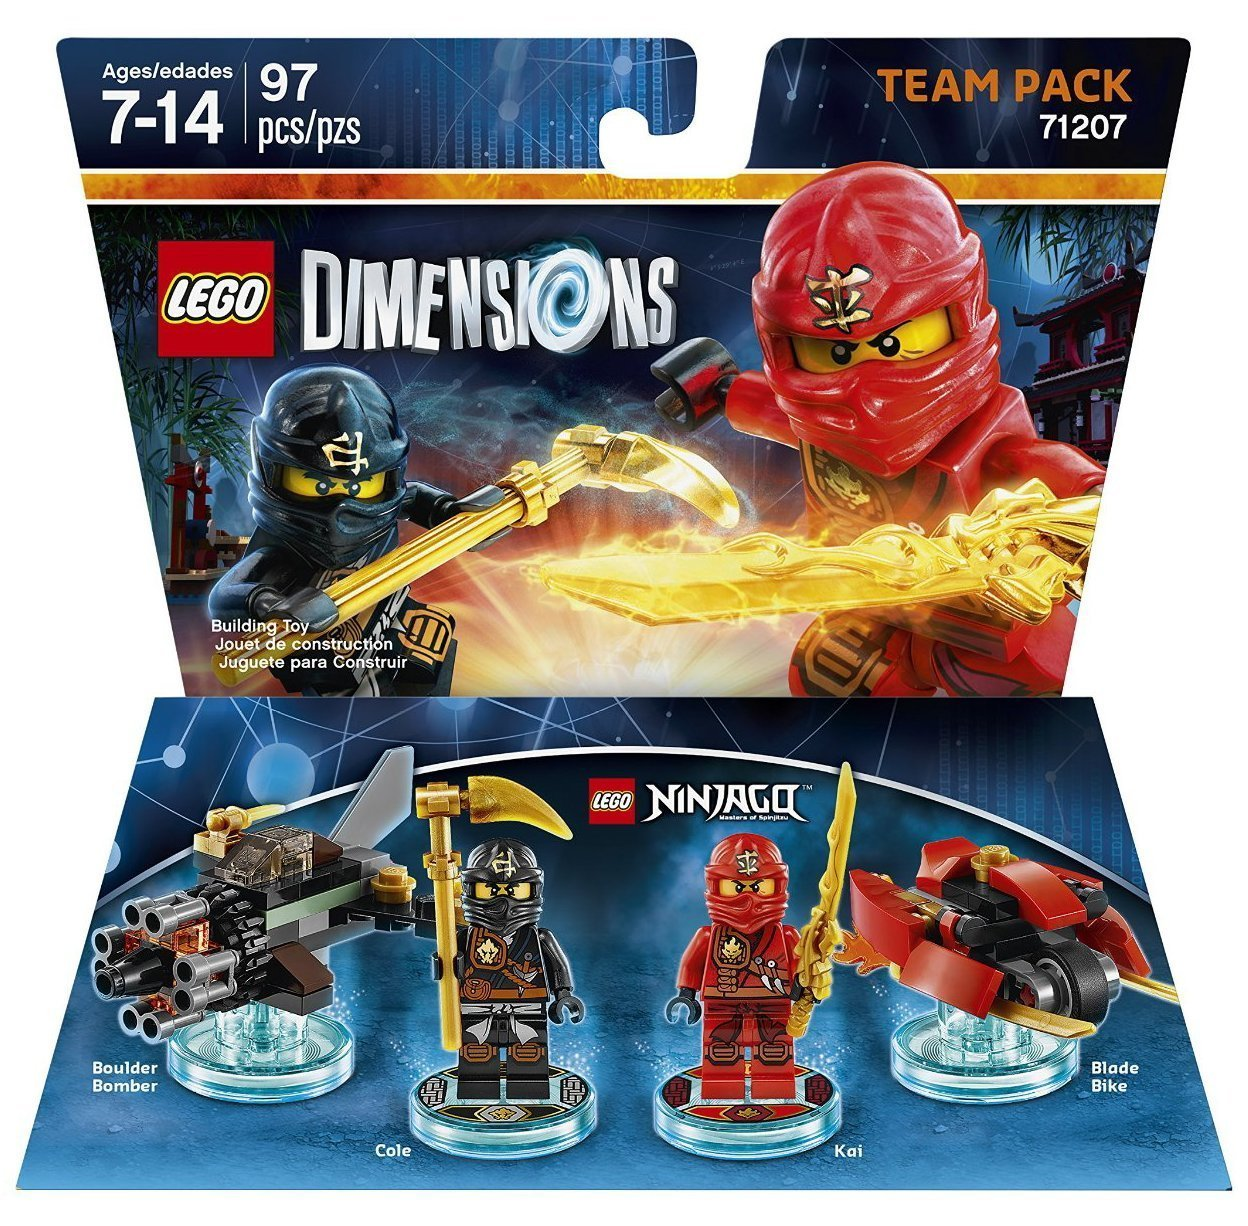 Ninjago Cole & Kai Team Pack + Adventure Time Finn The Human Level Pack + Scooby Doo Team Pack - Lego Dimensions (Non Machine Specific) by WB Lego (Image #6)